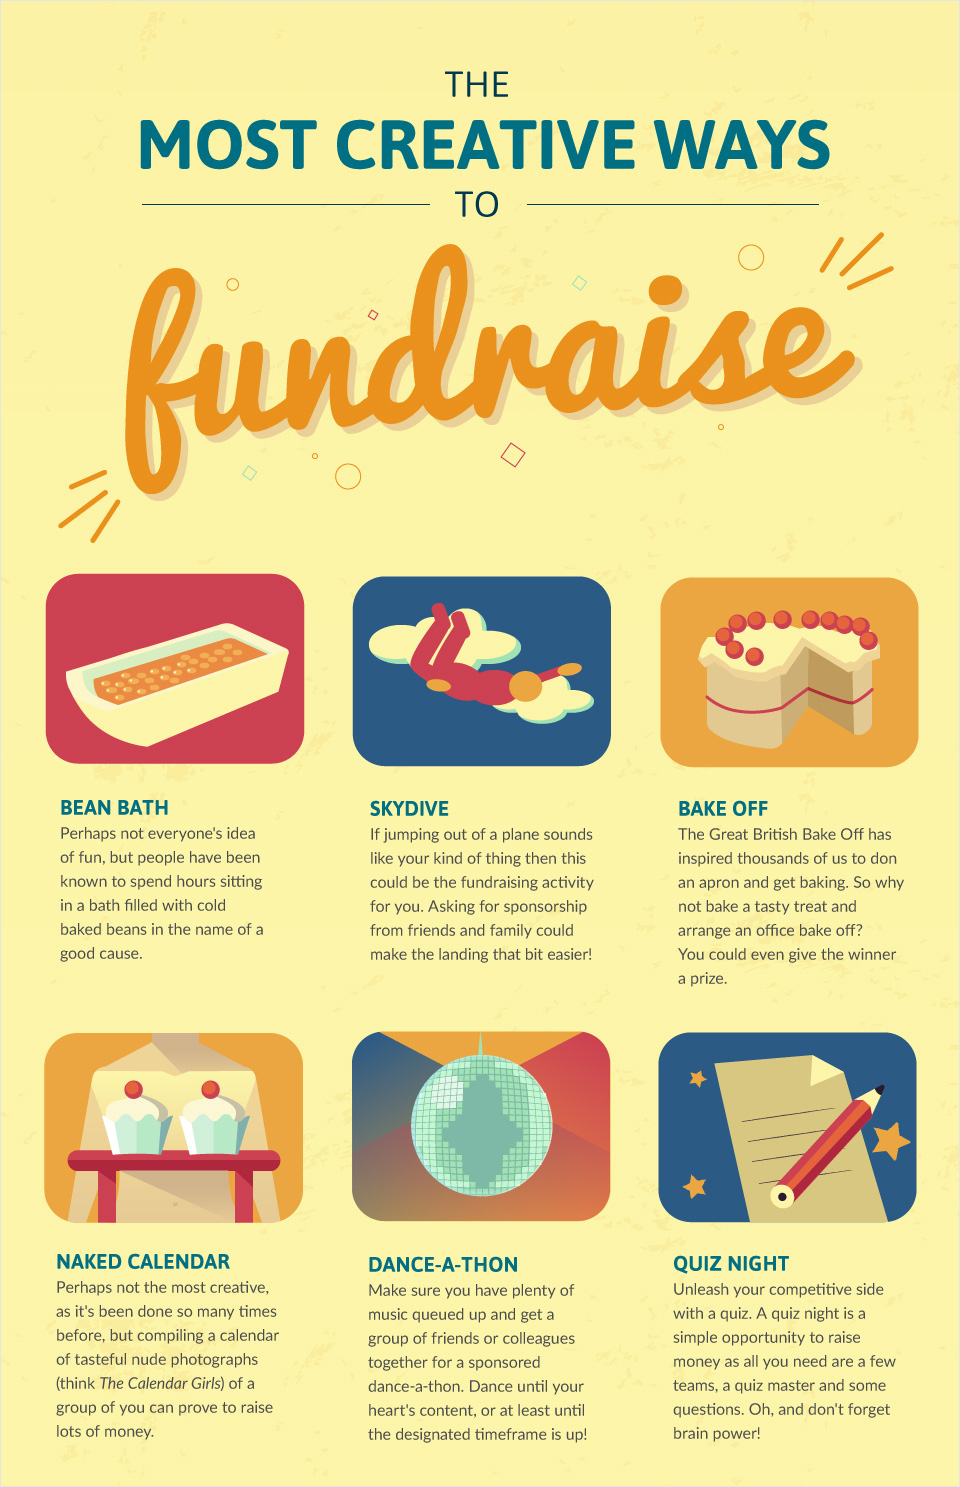 40 infographic ideas to